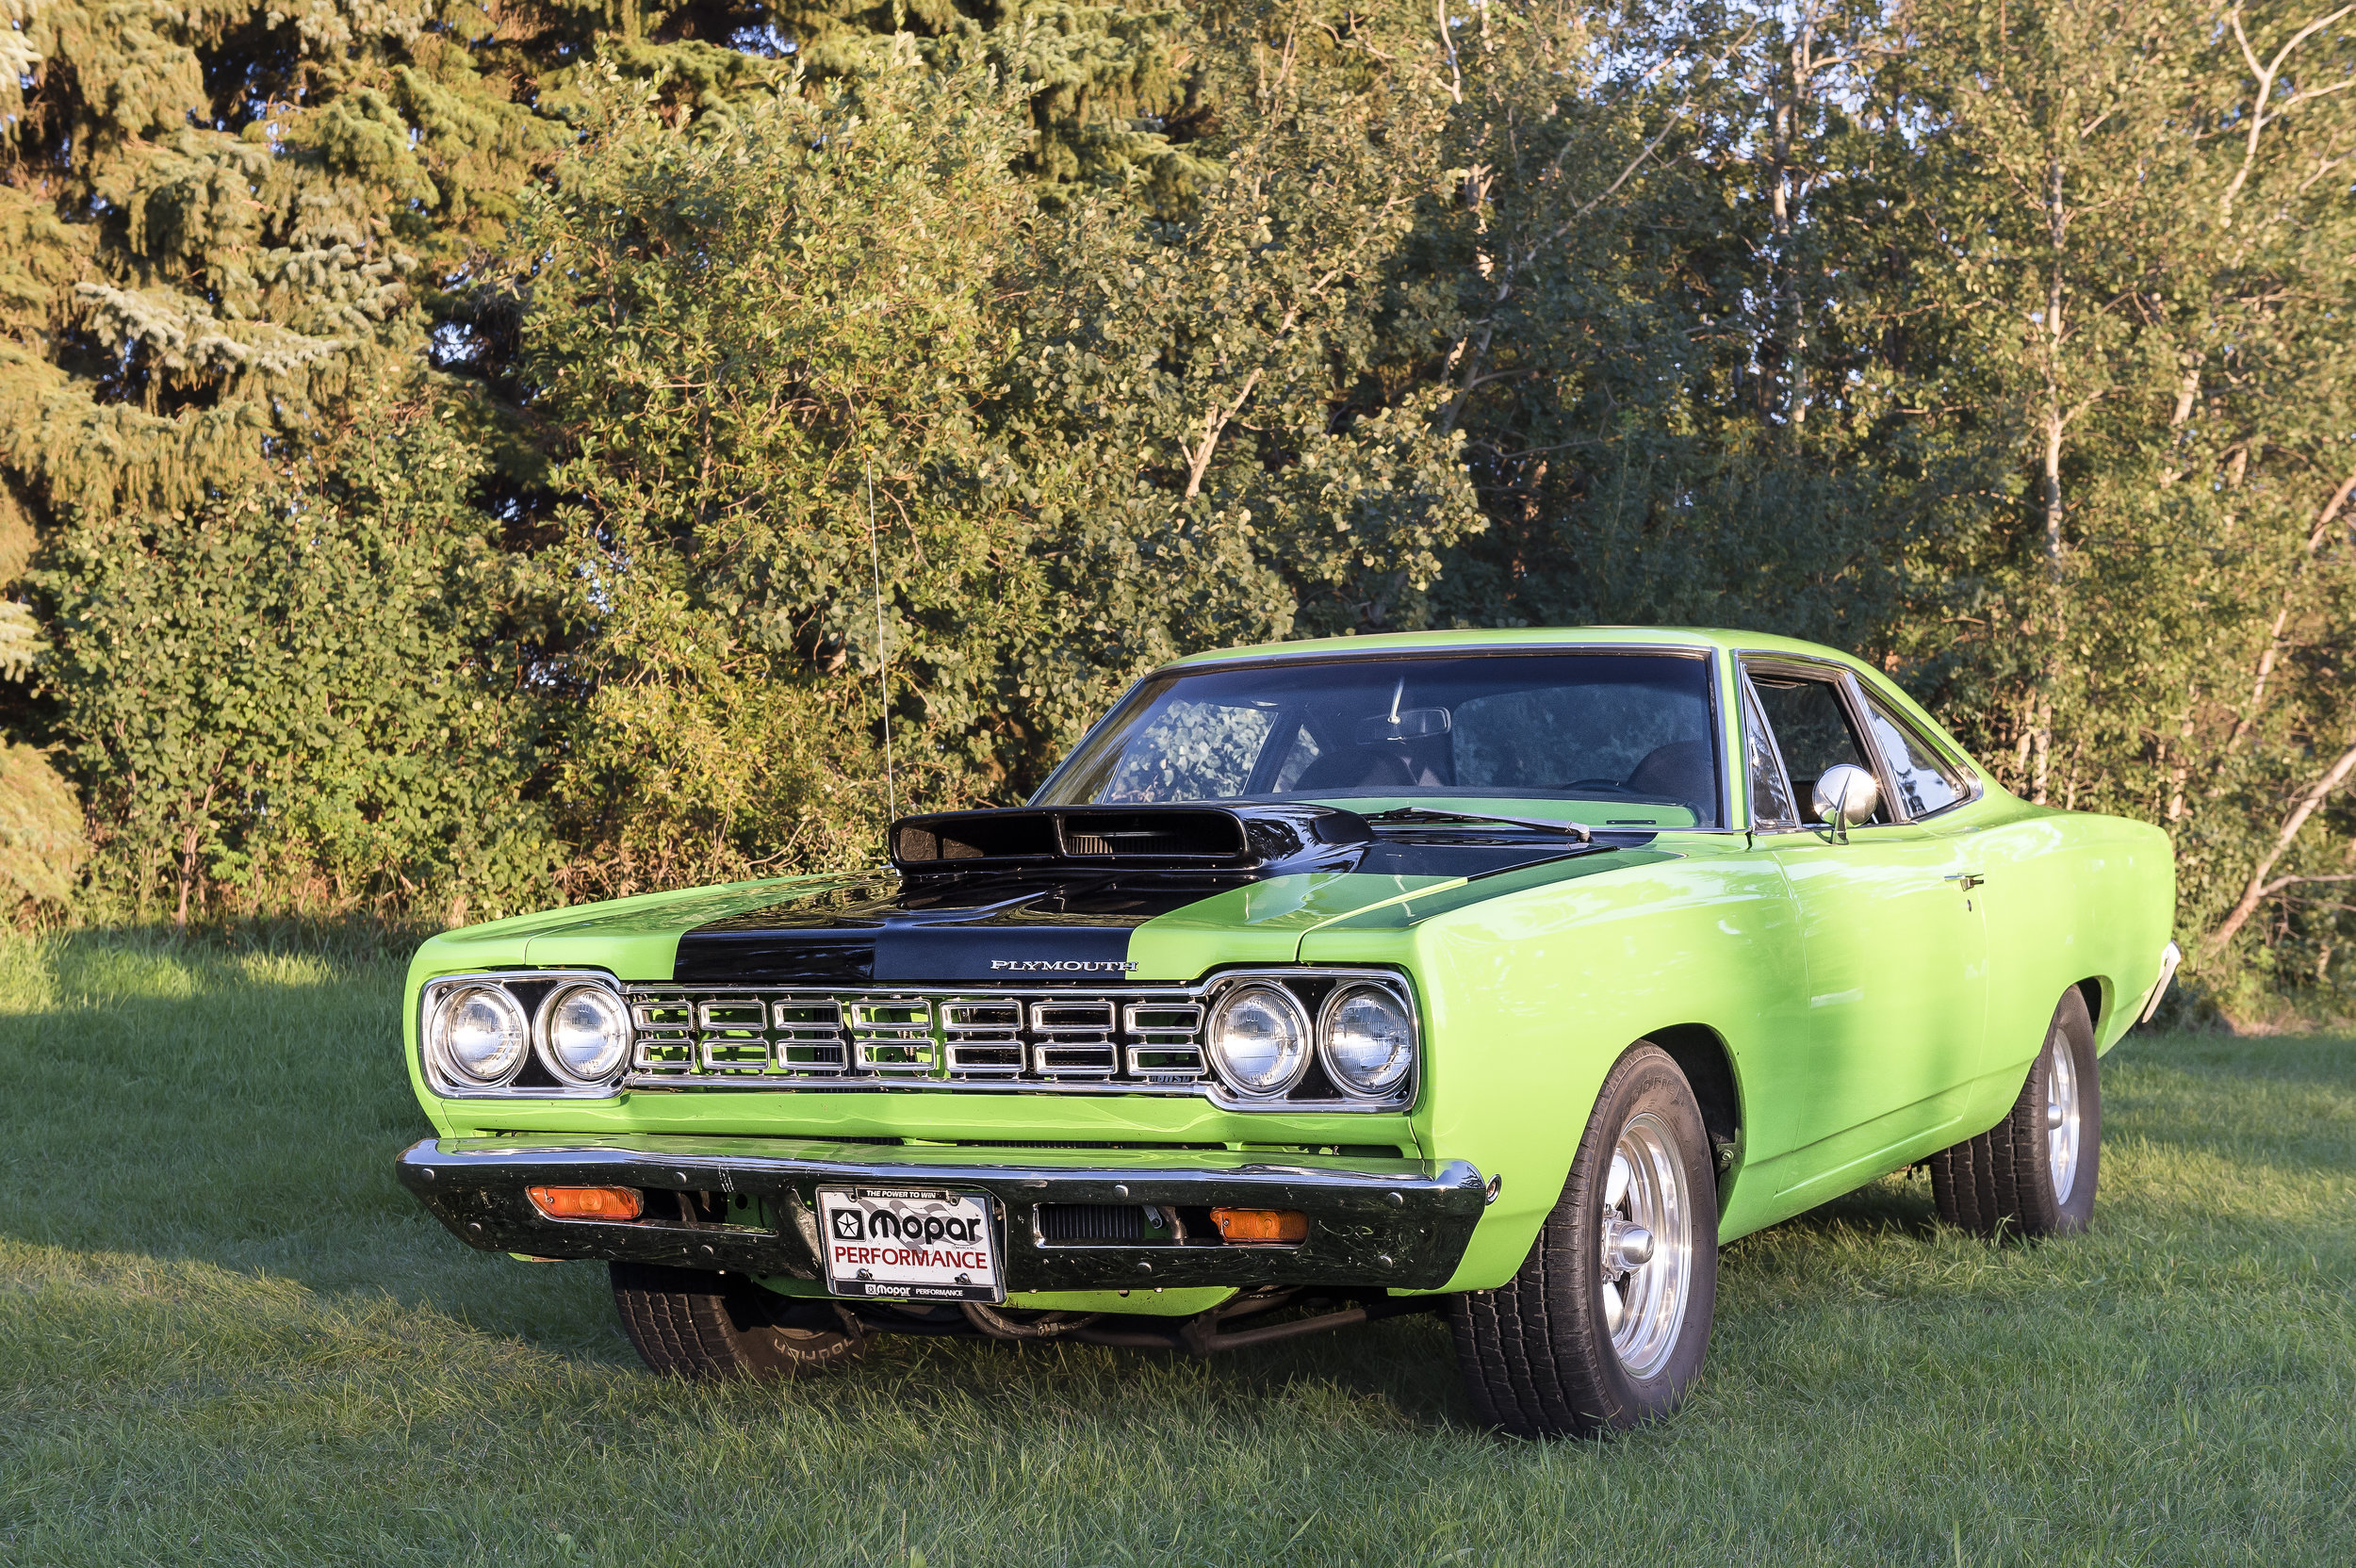 """1968 Plymouth Belvedere GTX Clone      440 Engine with a 727 Automatic Transmission and  Gear vendors overdrive. The car also has an 8-3/4"""" Rear Diff.  This Car is locally owned and driven. You can see it and more at Just Kruzin Kruz nights"""